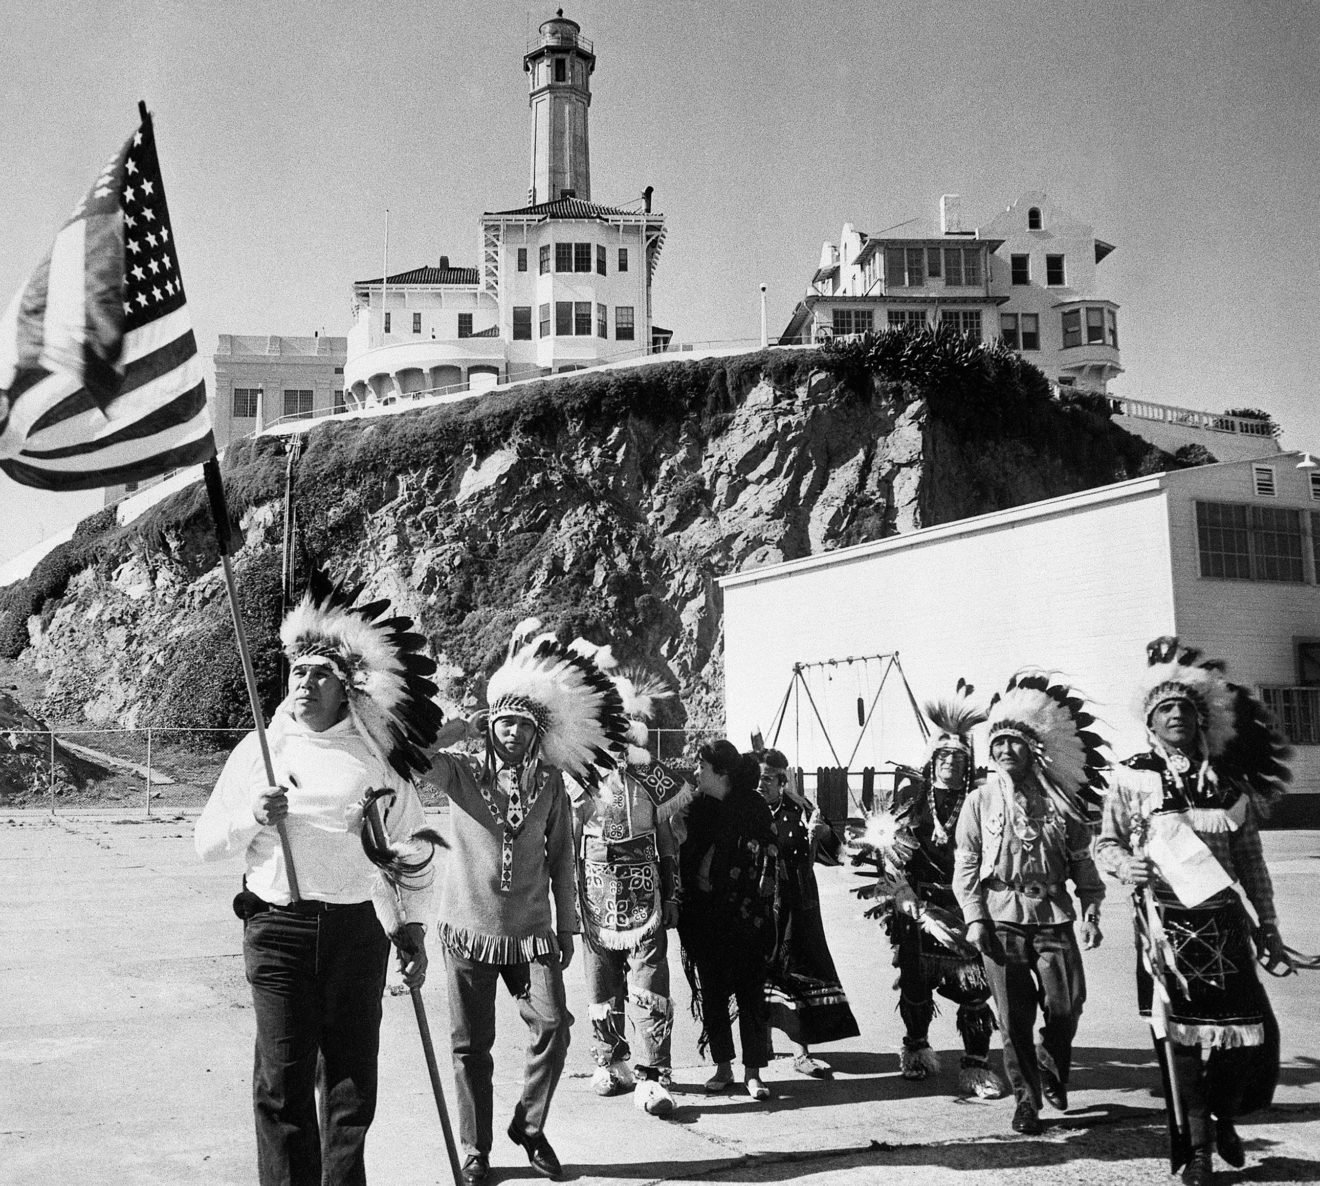 a group of Native Americans holding an American flag on a beach with buildings in the background (alcatraz)